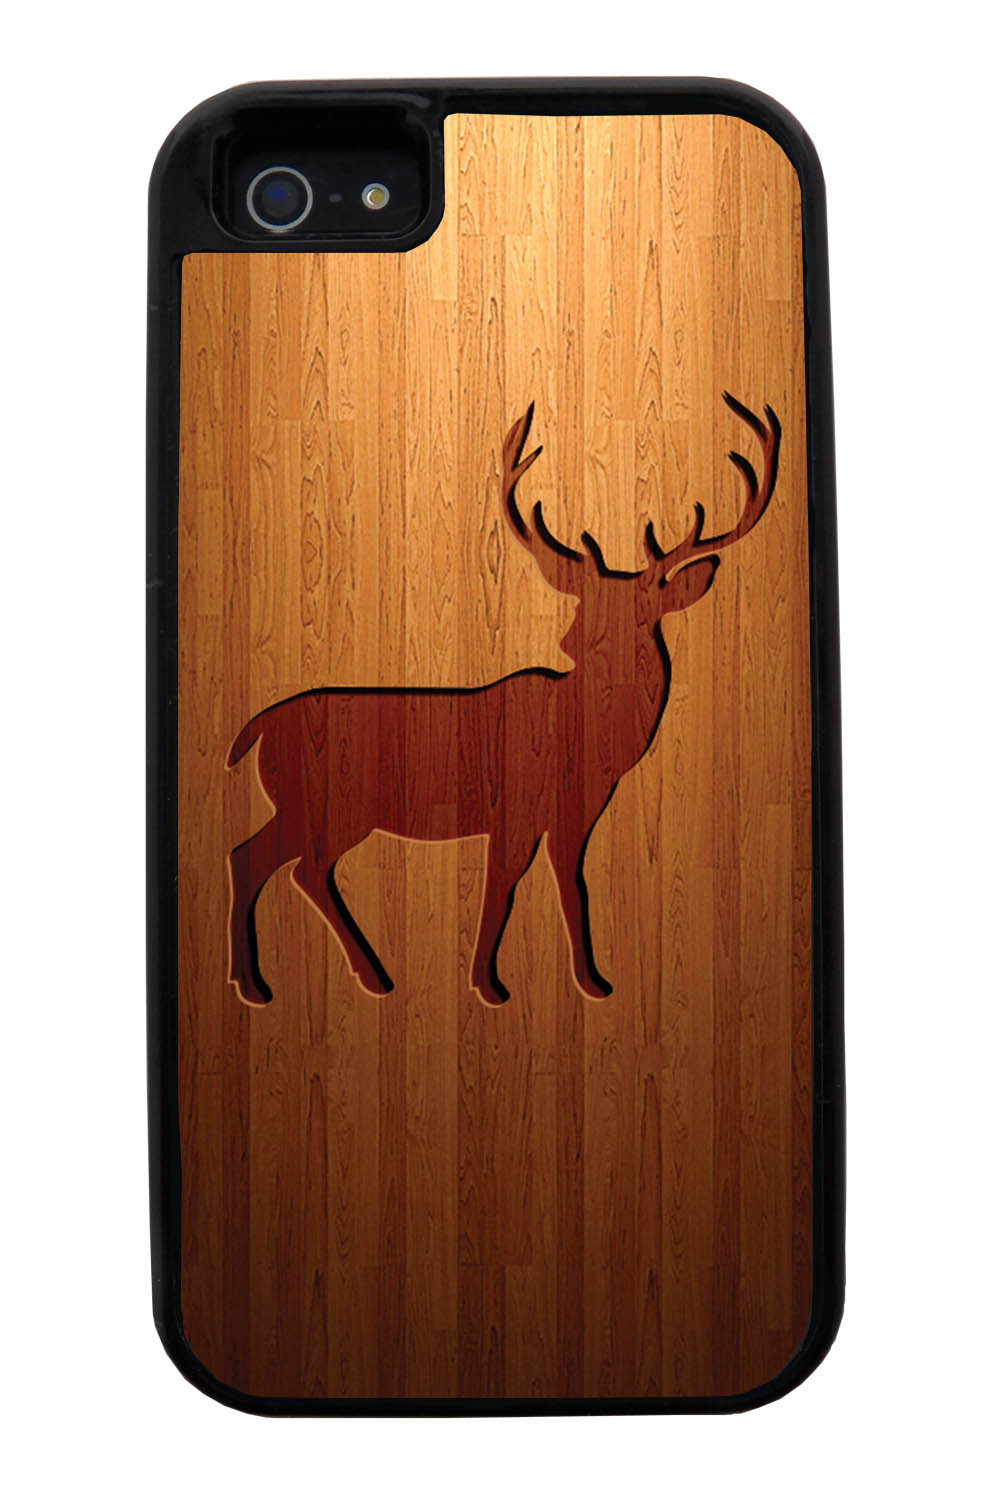 Apple iPhone 5 / 5S Deer Case - Simulated Wood Engraving - Picture - Black Tough Hybrid Case